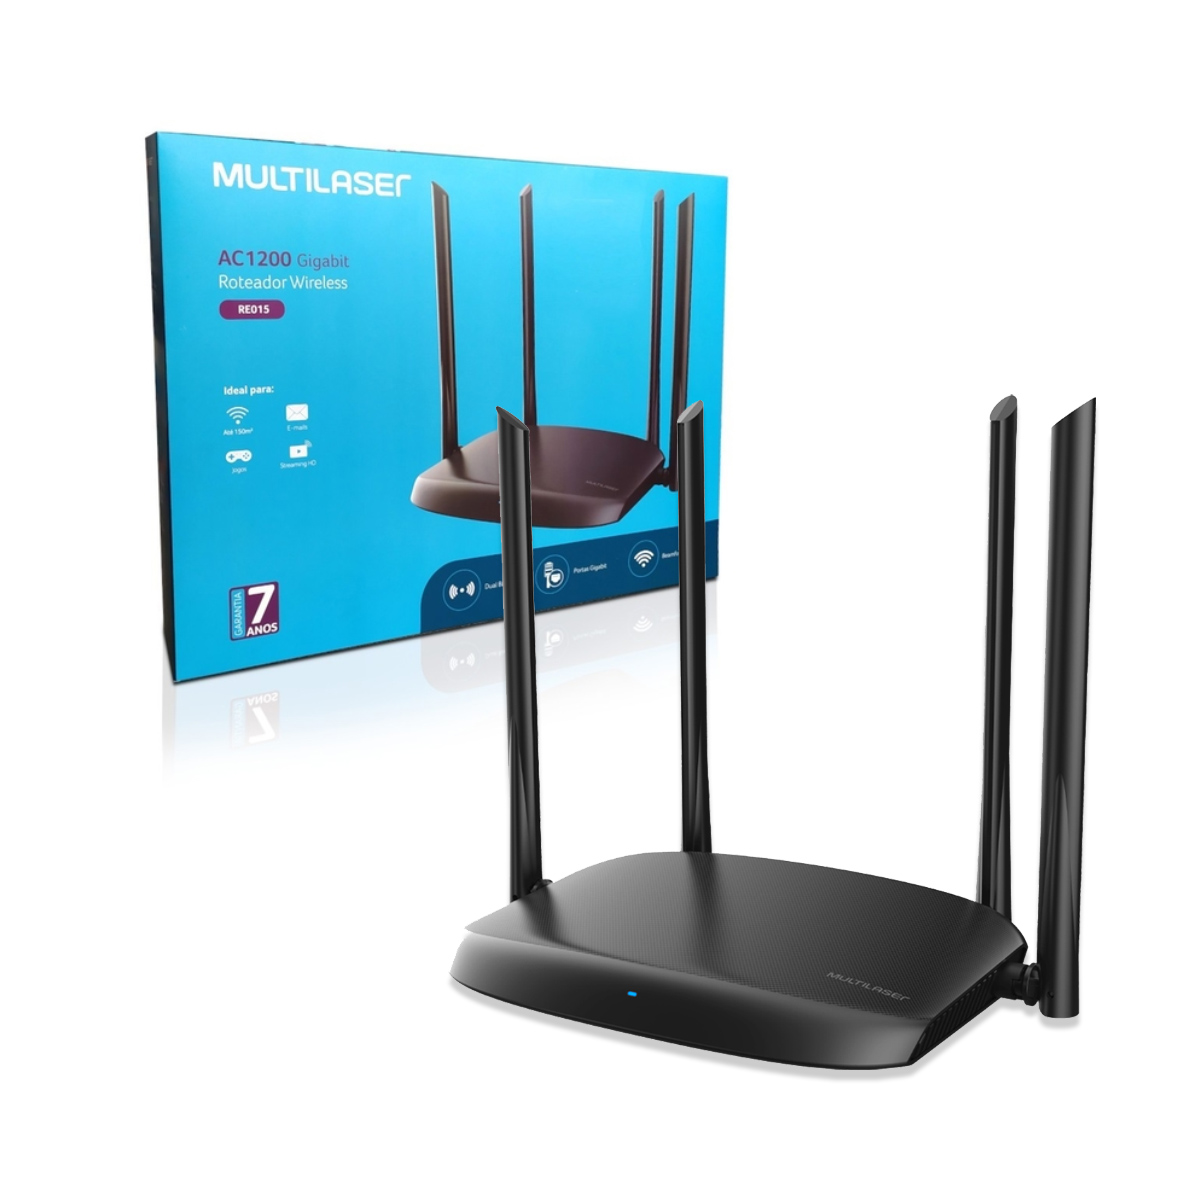 Roteador Wireless 2.4/5ghz 1200mbps Dual Band Gigabit Re015